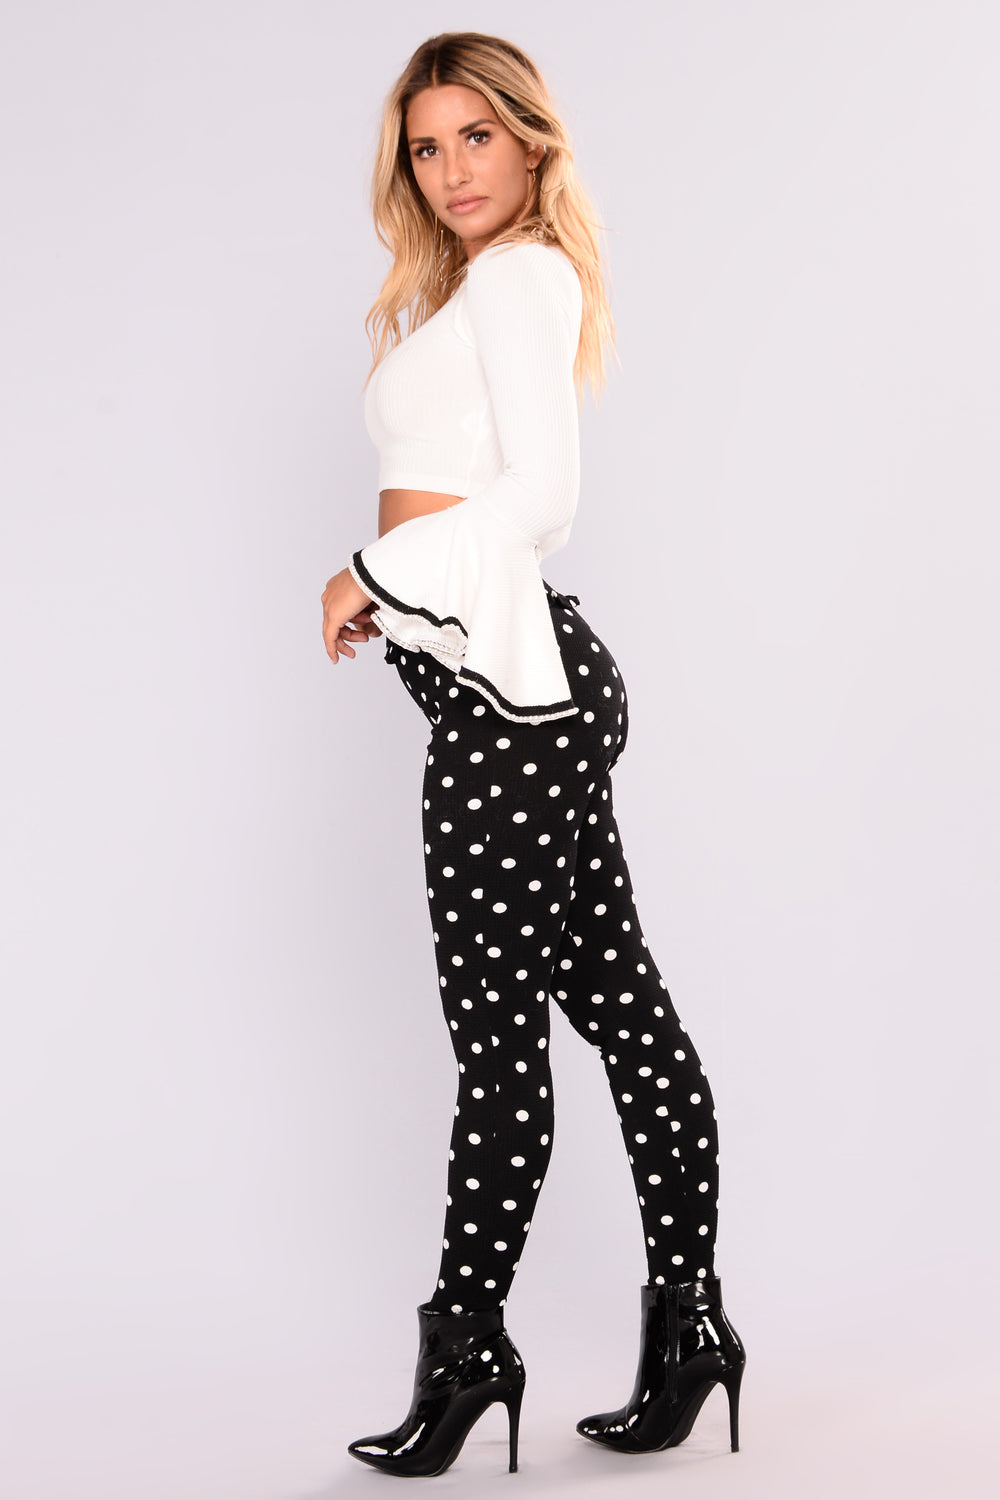 Find and save ideas about Polka dot pants on Pinterest. | See more ideas about Teacher style, Brown pants outfit for work and Teacher wardrobe. Women's fashion. Polka dot pants Black/white polka dot pants, black top, yellow handbag and shoes. Find .